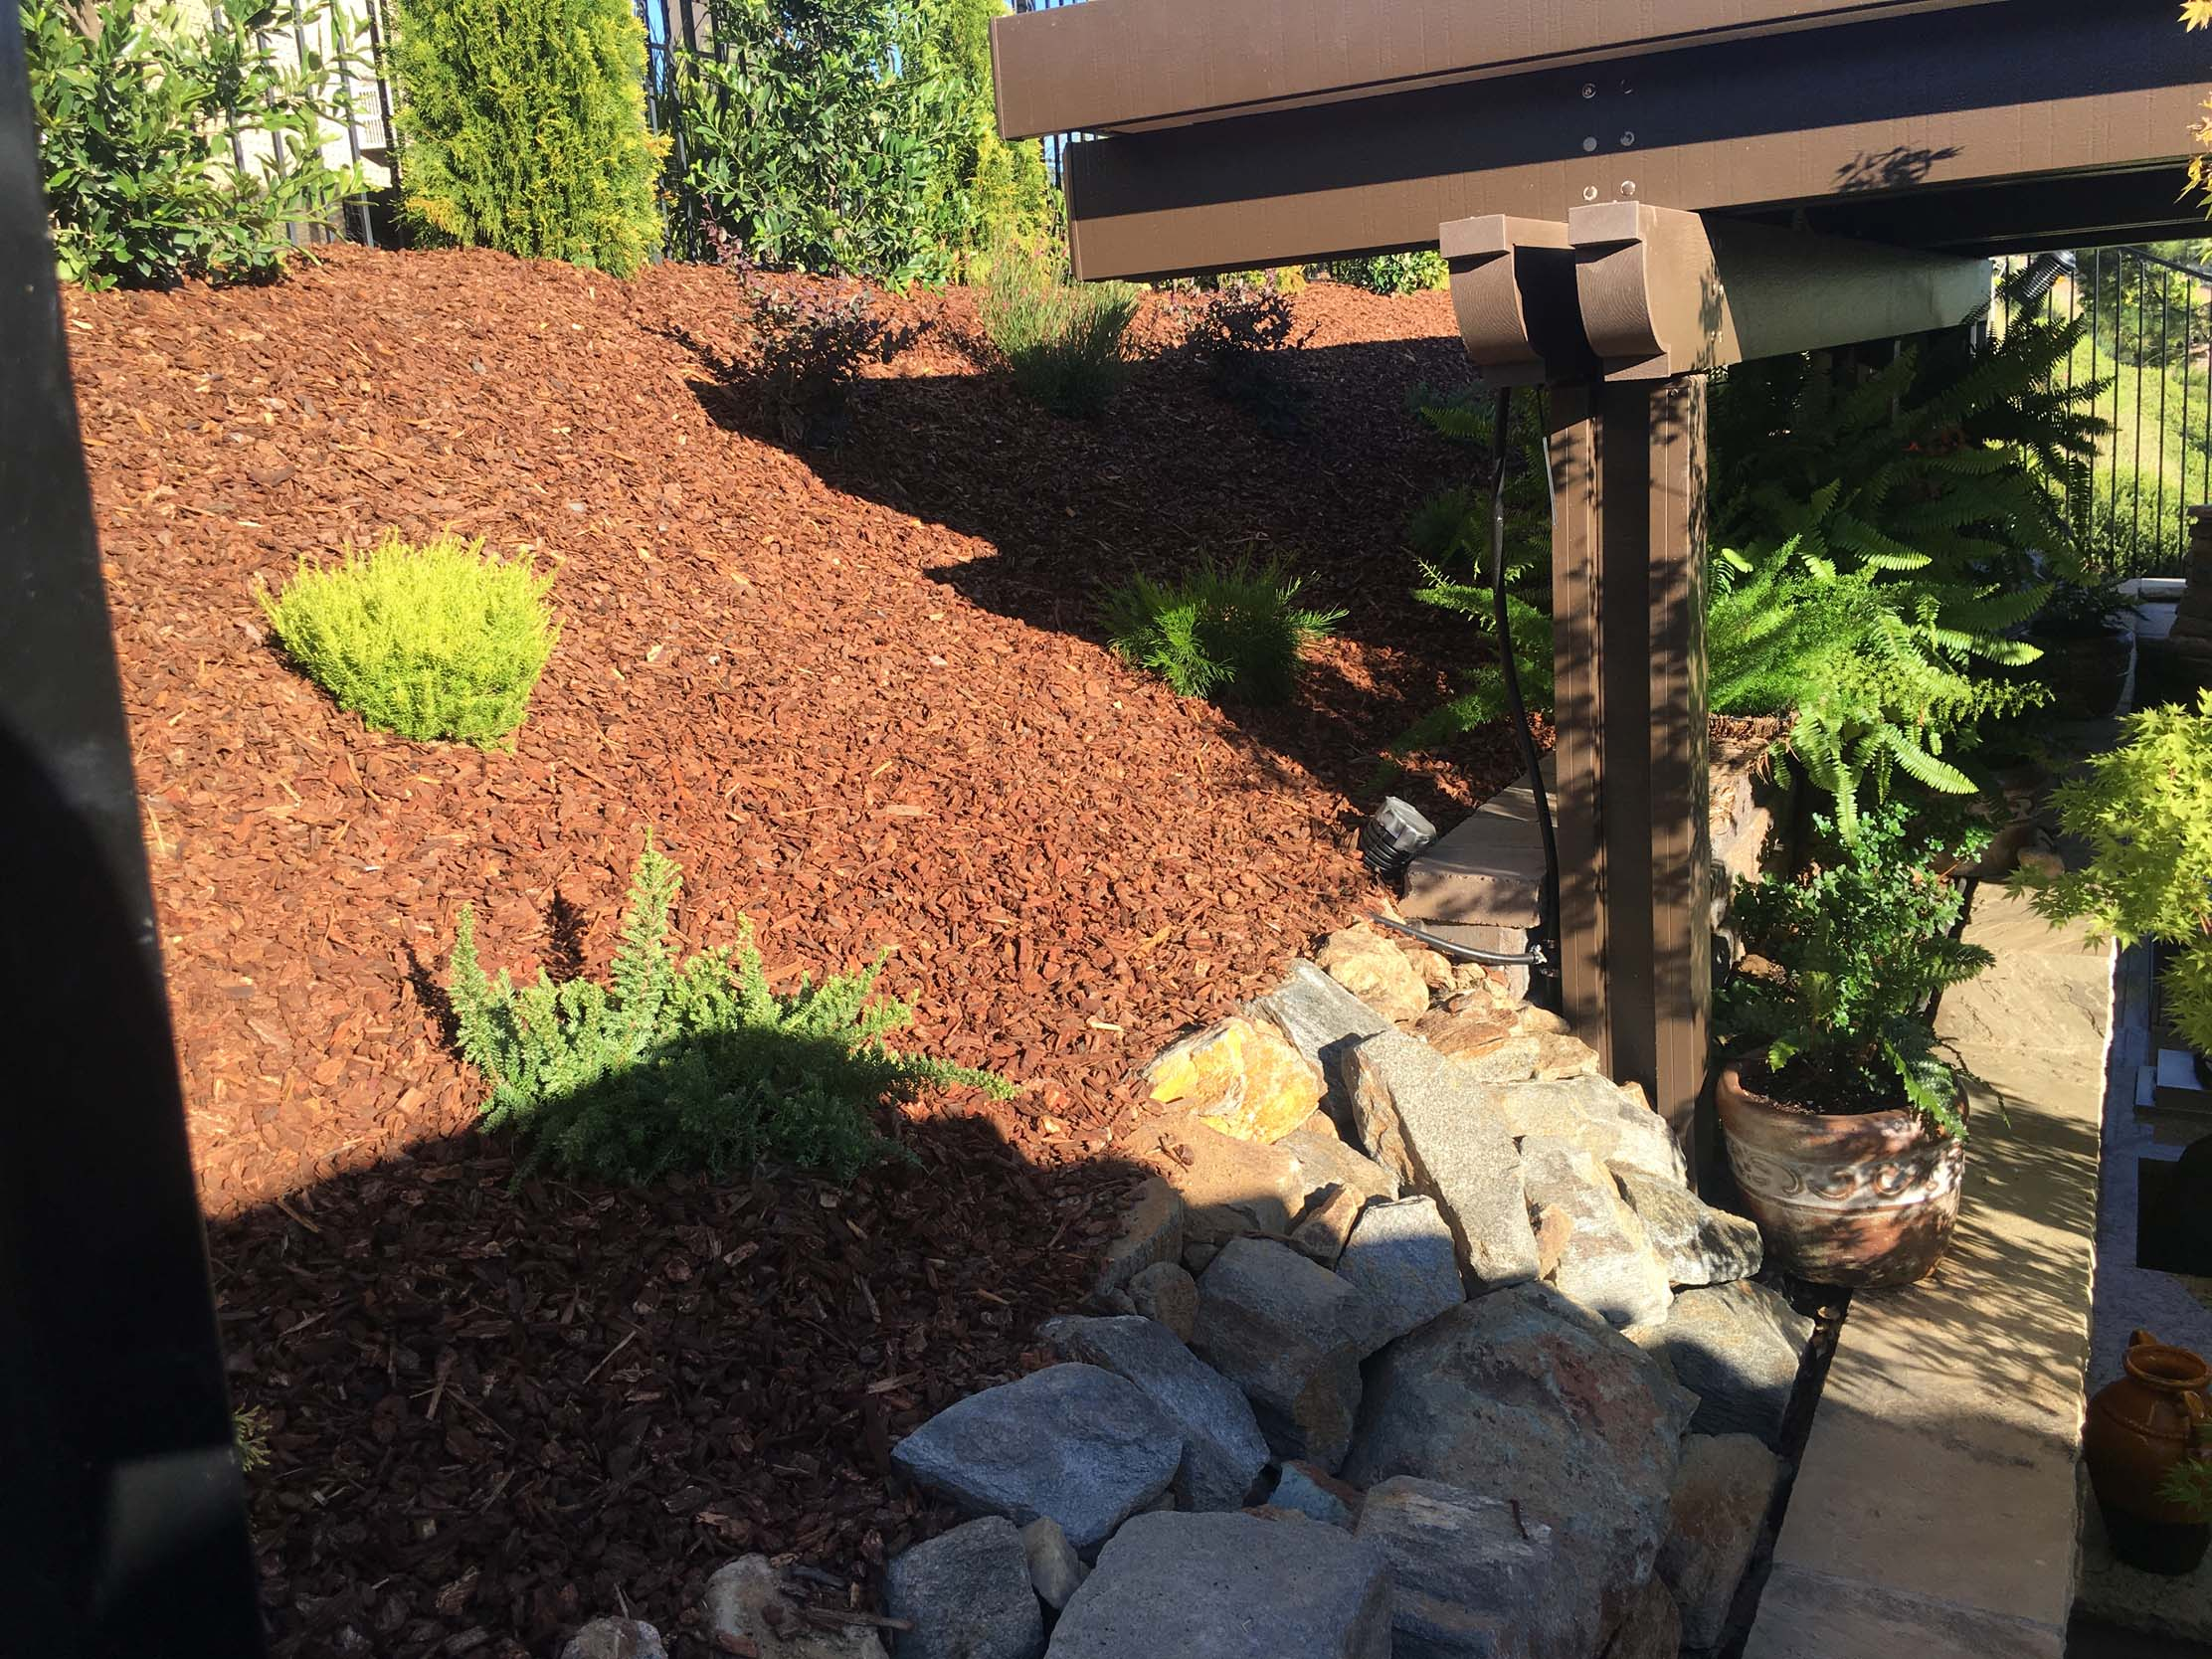 Recently completed residential landscaping project in El Dorado Hills, CA.